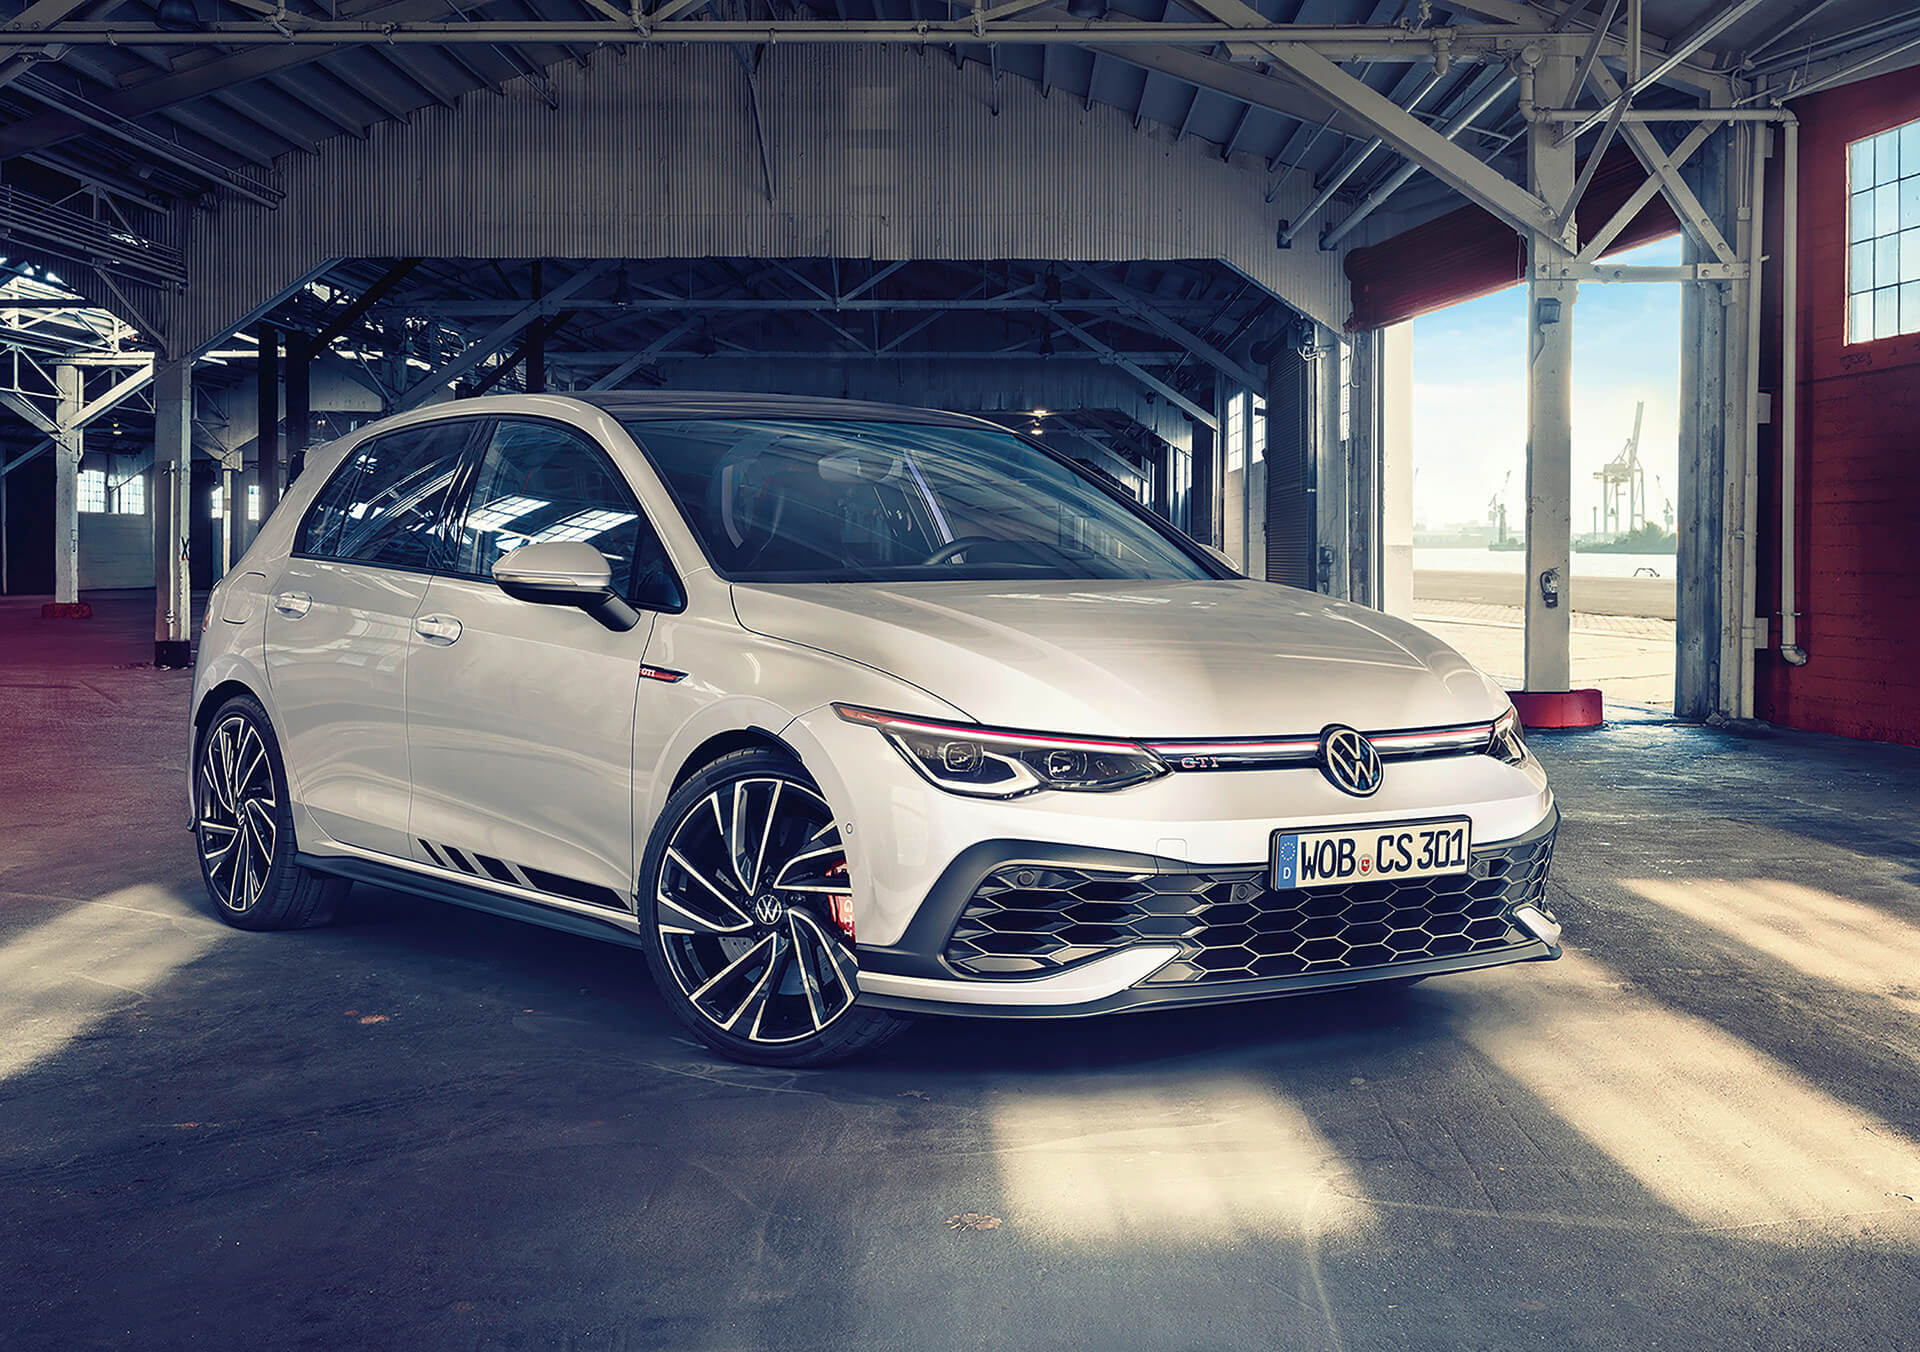 Νέο Volkswagen Golf GTI Clubsport - Εμπρός όψη